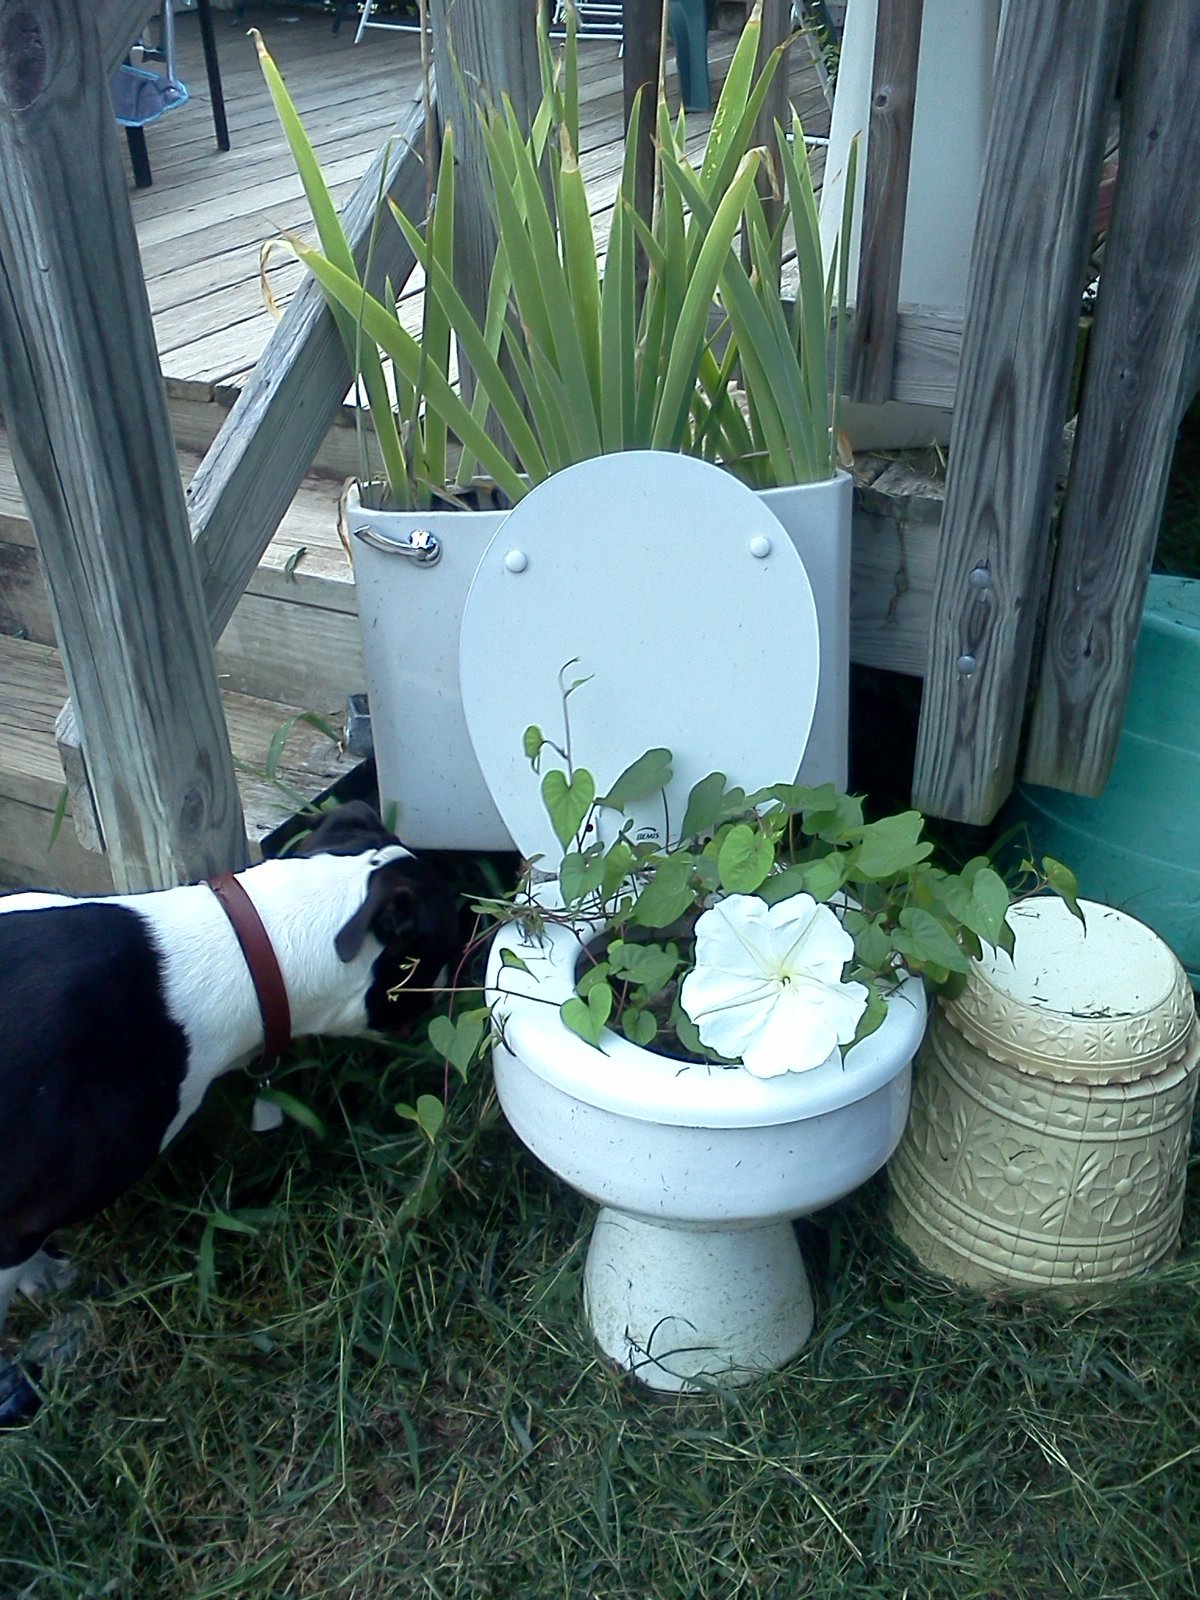 My toilet is blooming.